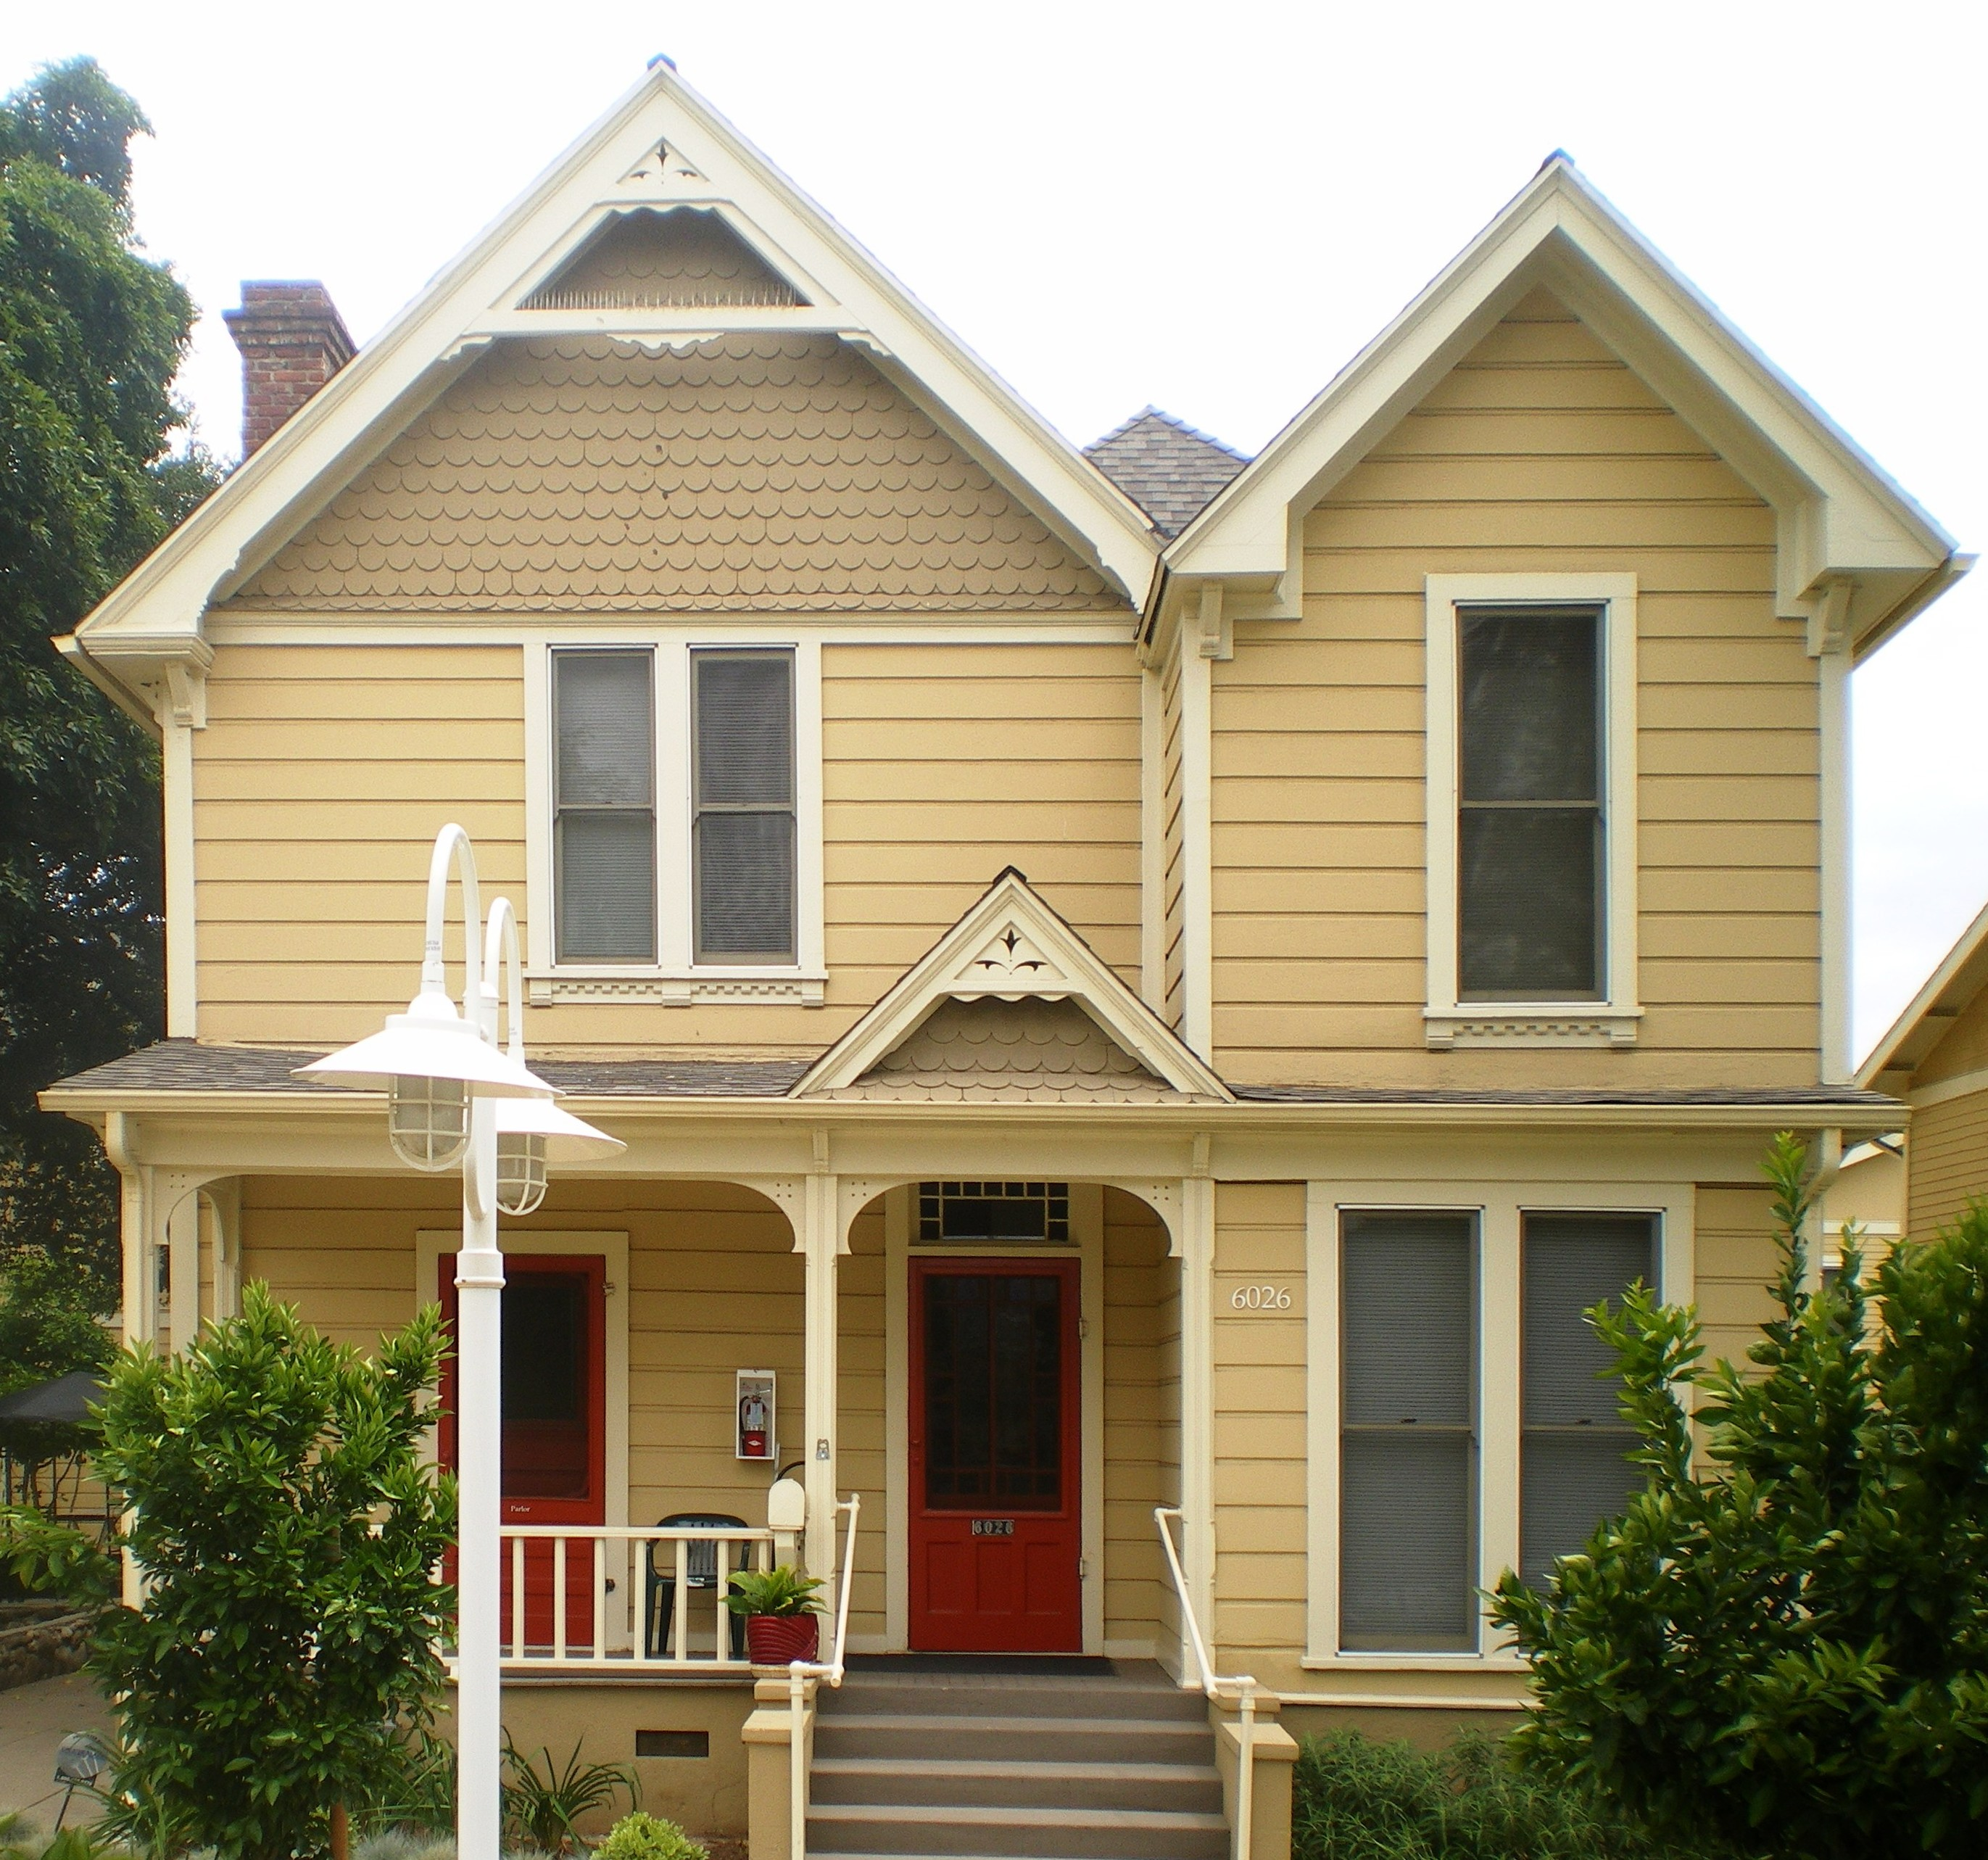 File pisgah home historic district highland park jpg wikipedia - House images ...